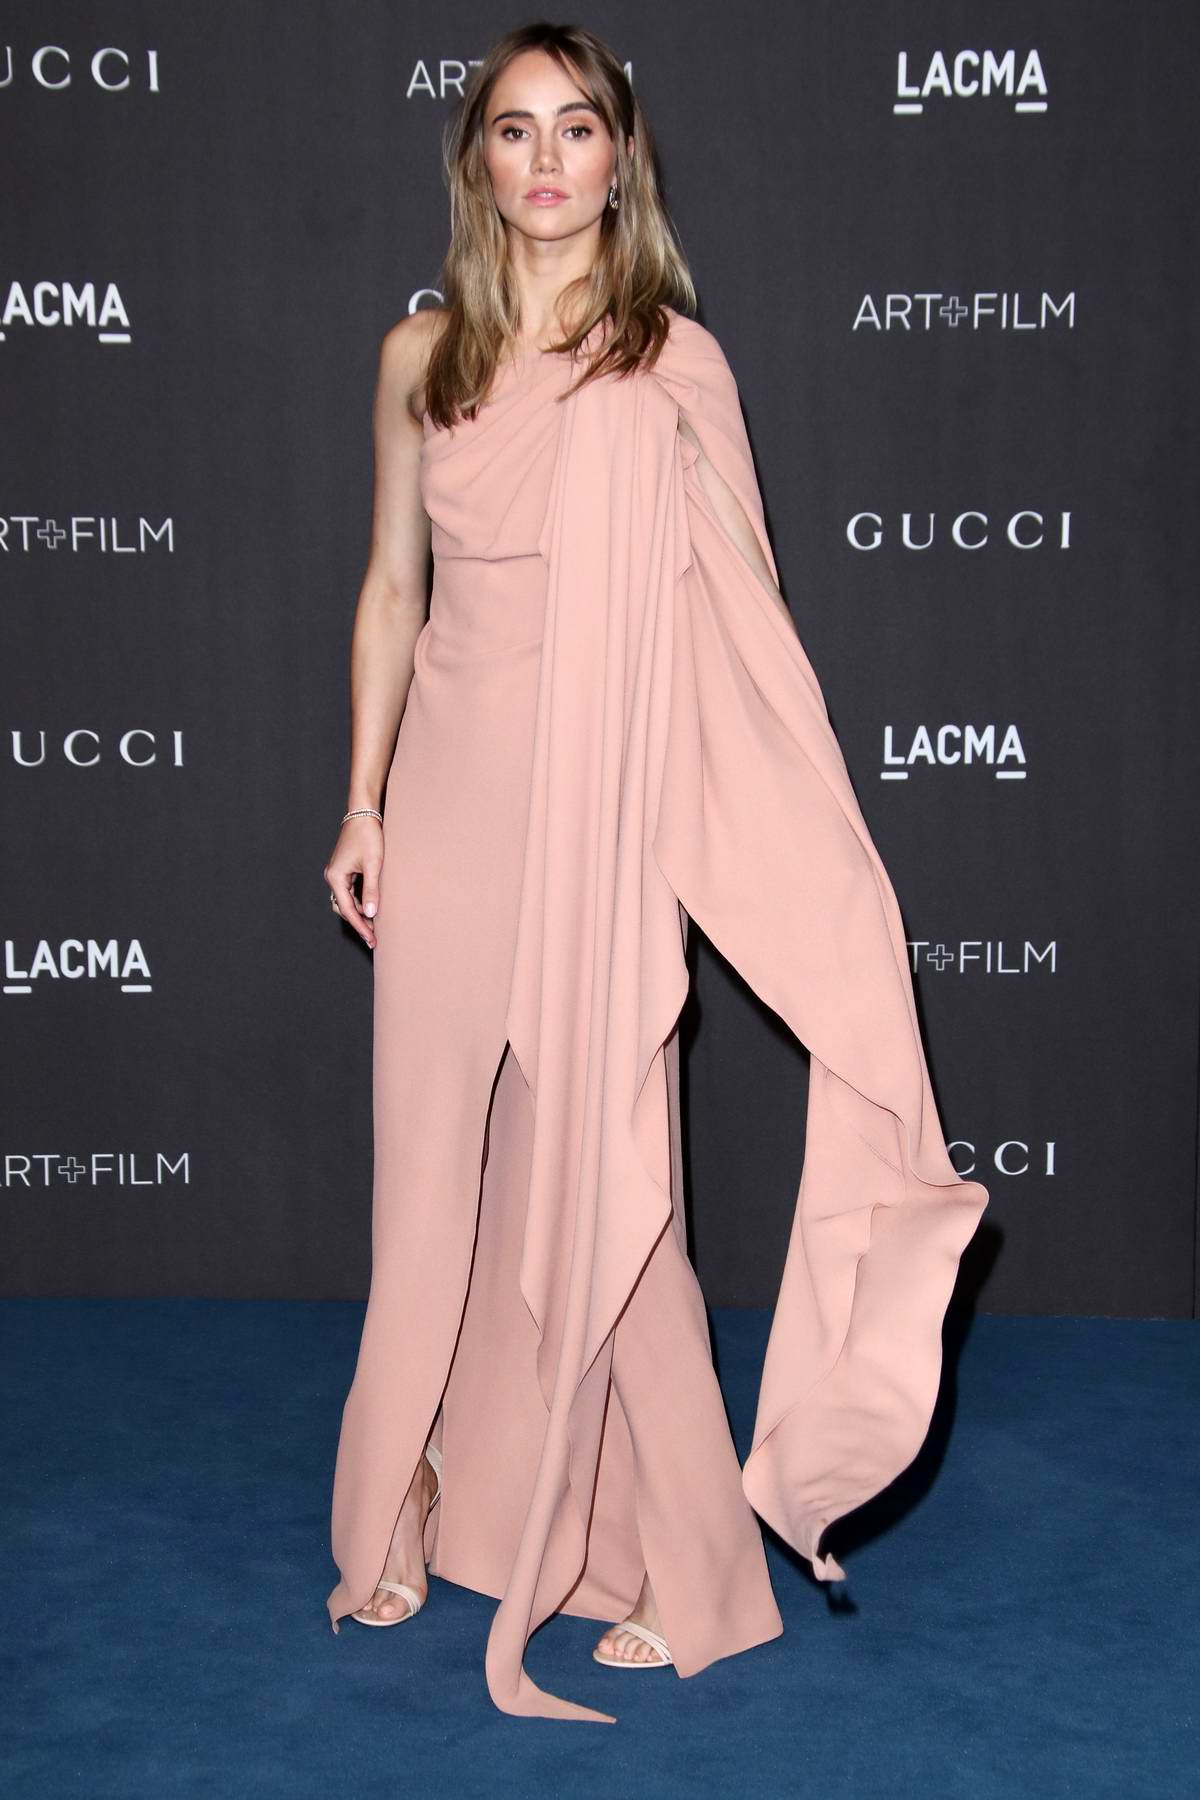 Suki Waterhouse attends the 2019 LACMA 2019 Art + Film Gala in Los Angeles